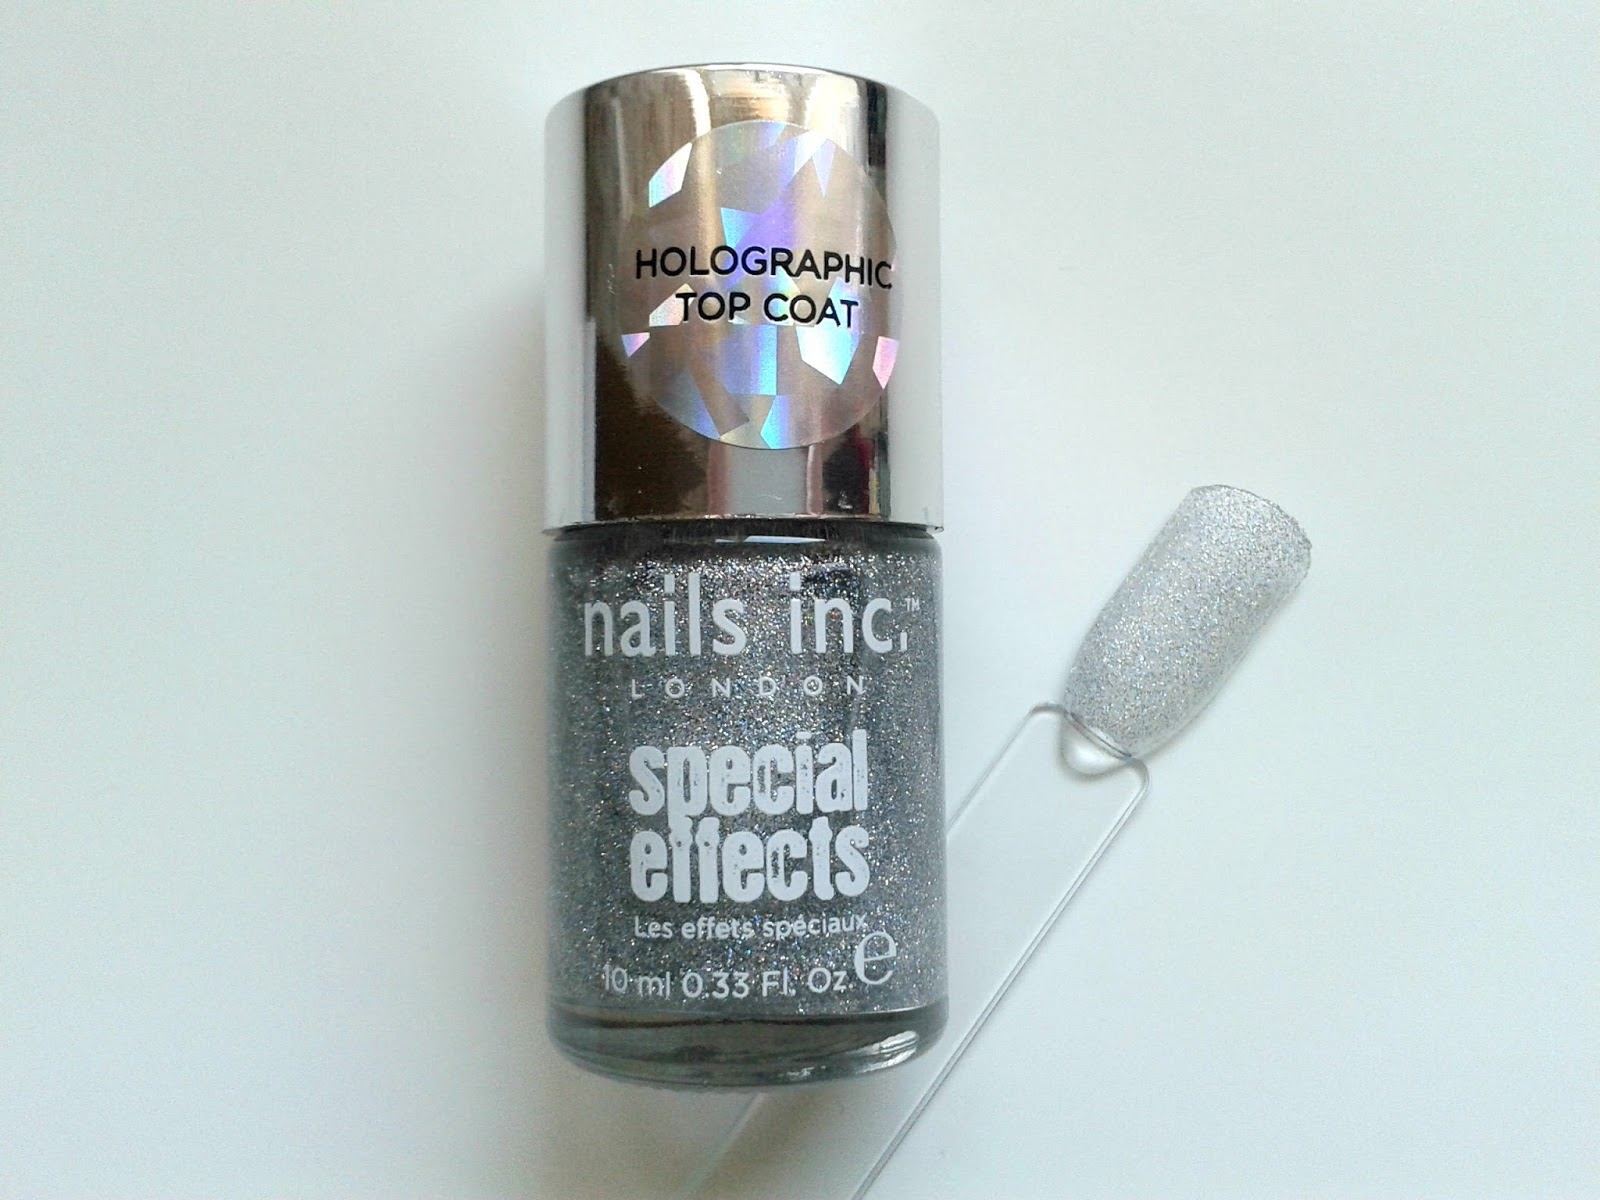 Nails Inc Electric Lane Holographic Top Coat Beauty Review Swatch Nails Inc Nail Polish Diary: September